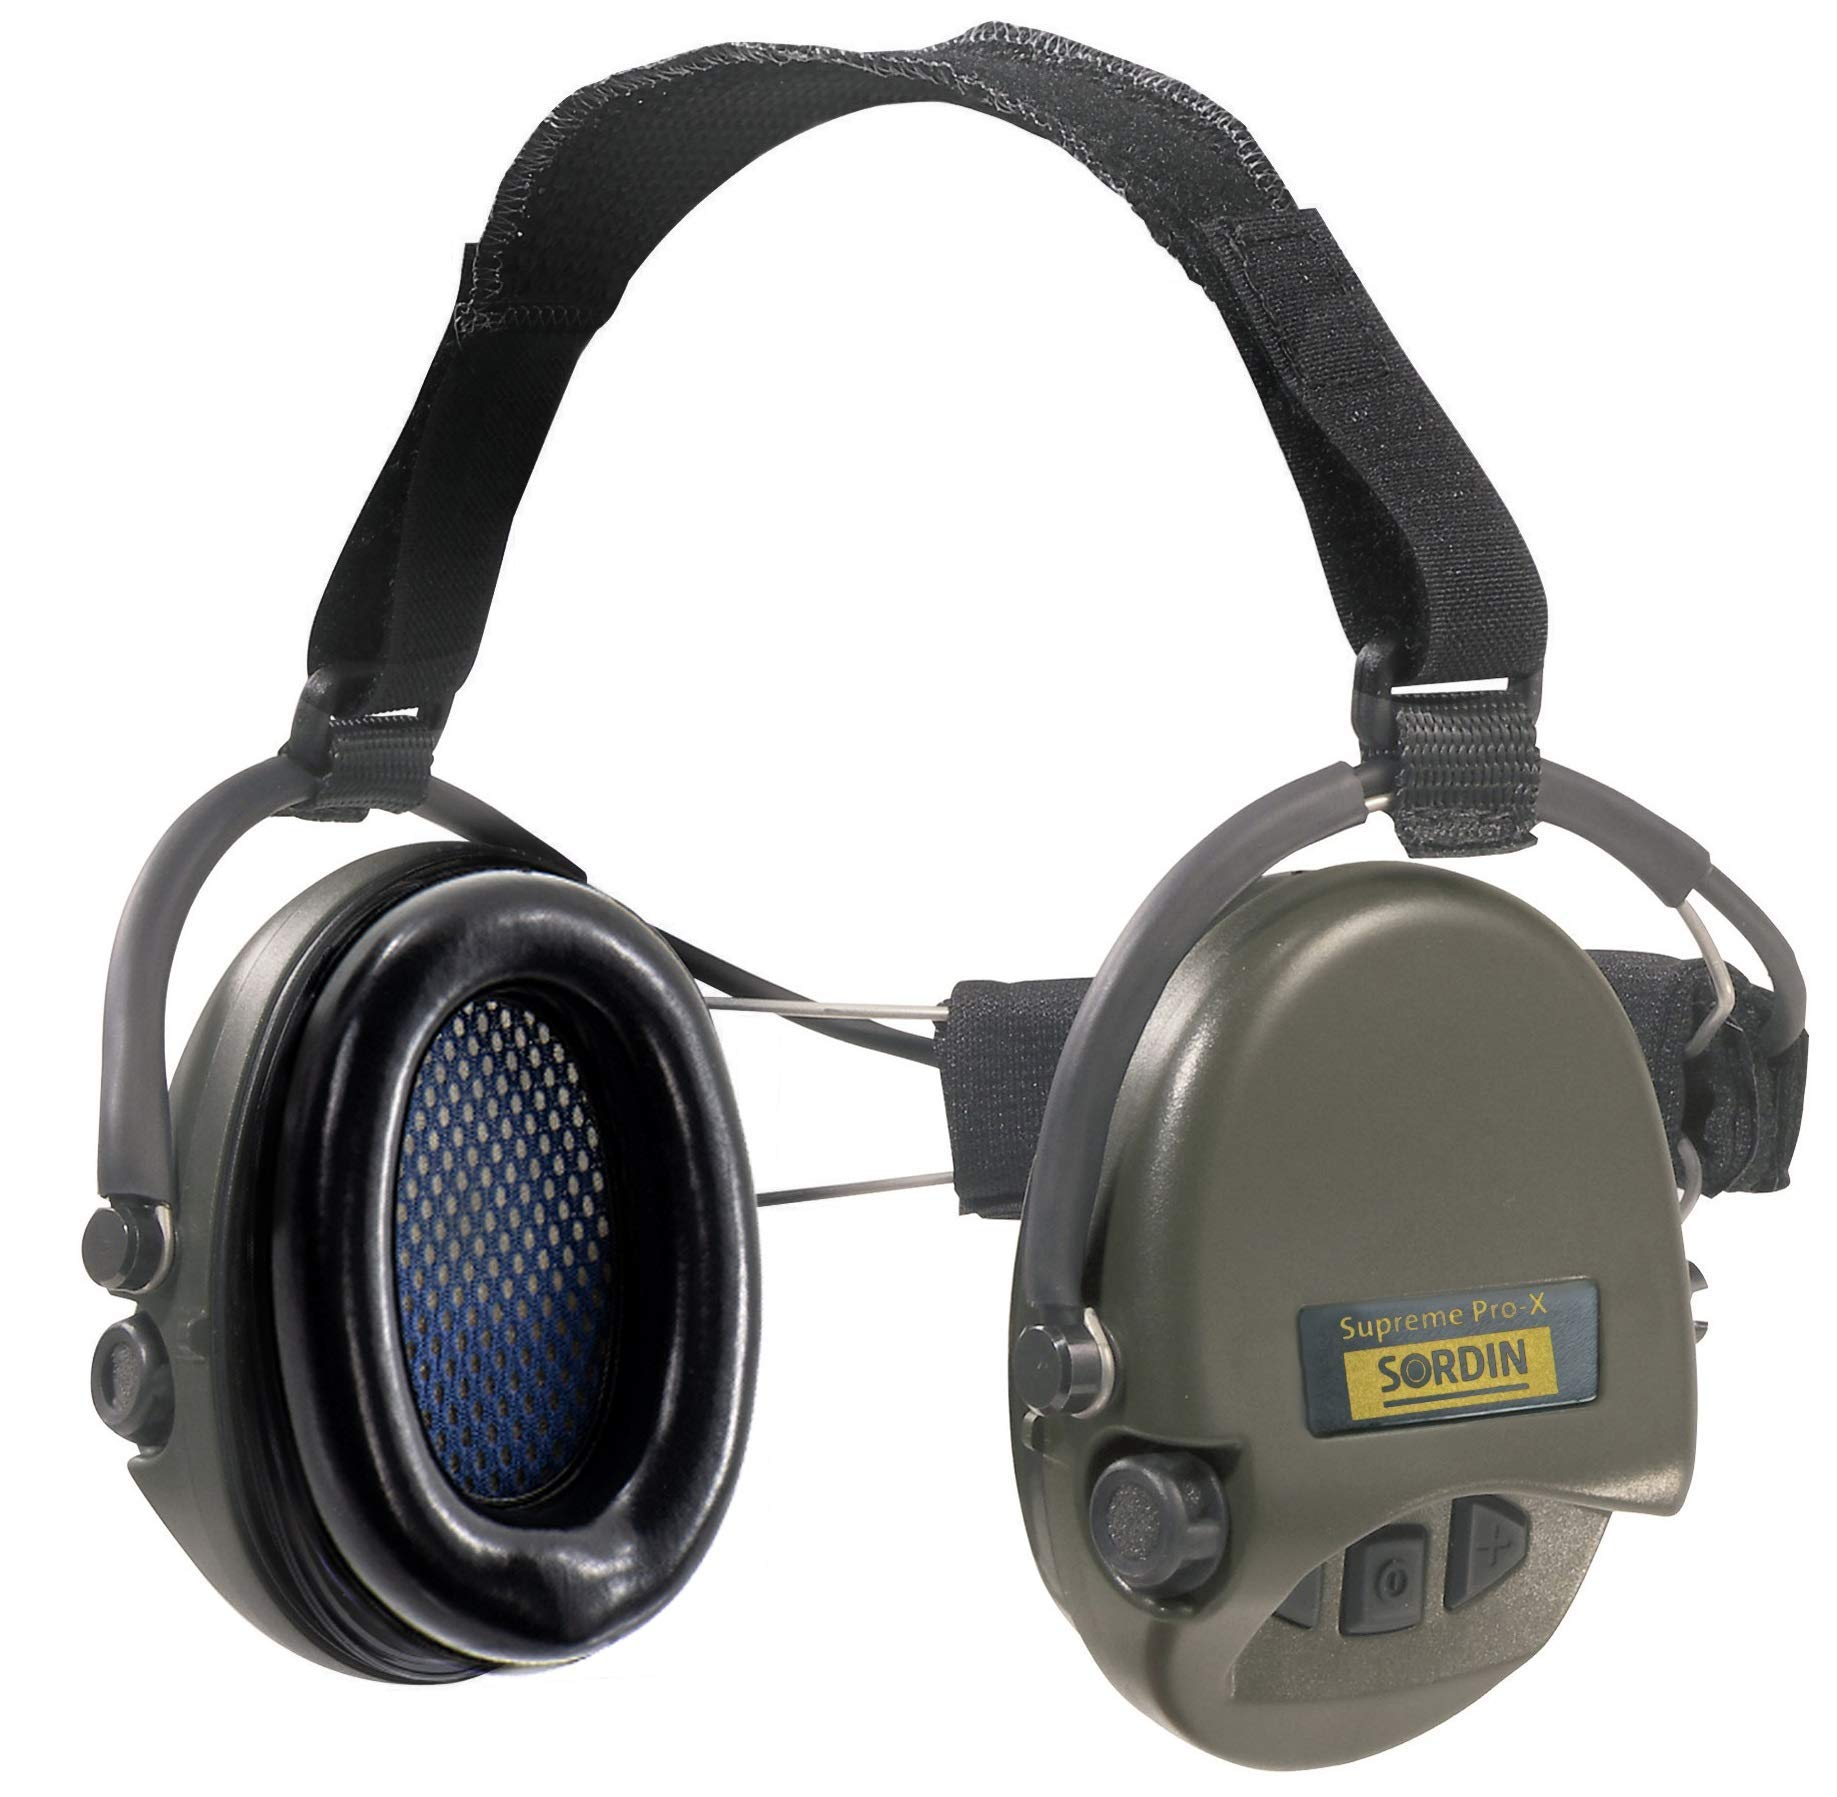 Sordin Supreme PRO X Neckband Safety Ear Muffs - Perfect for Helmets - Foam Ear Seals with SNR: 25dB - Green - 76302-X by Sordin